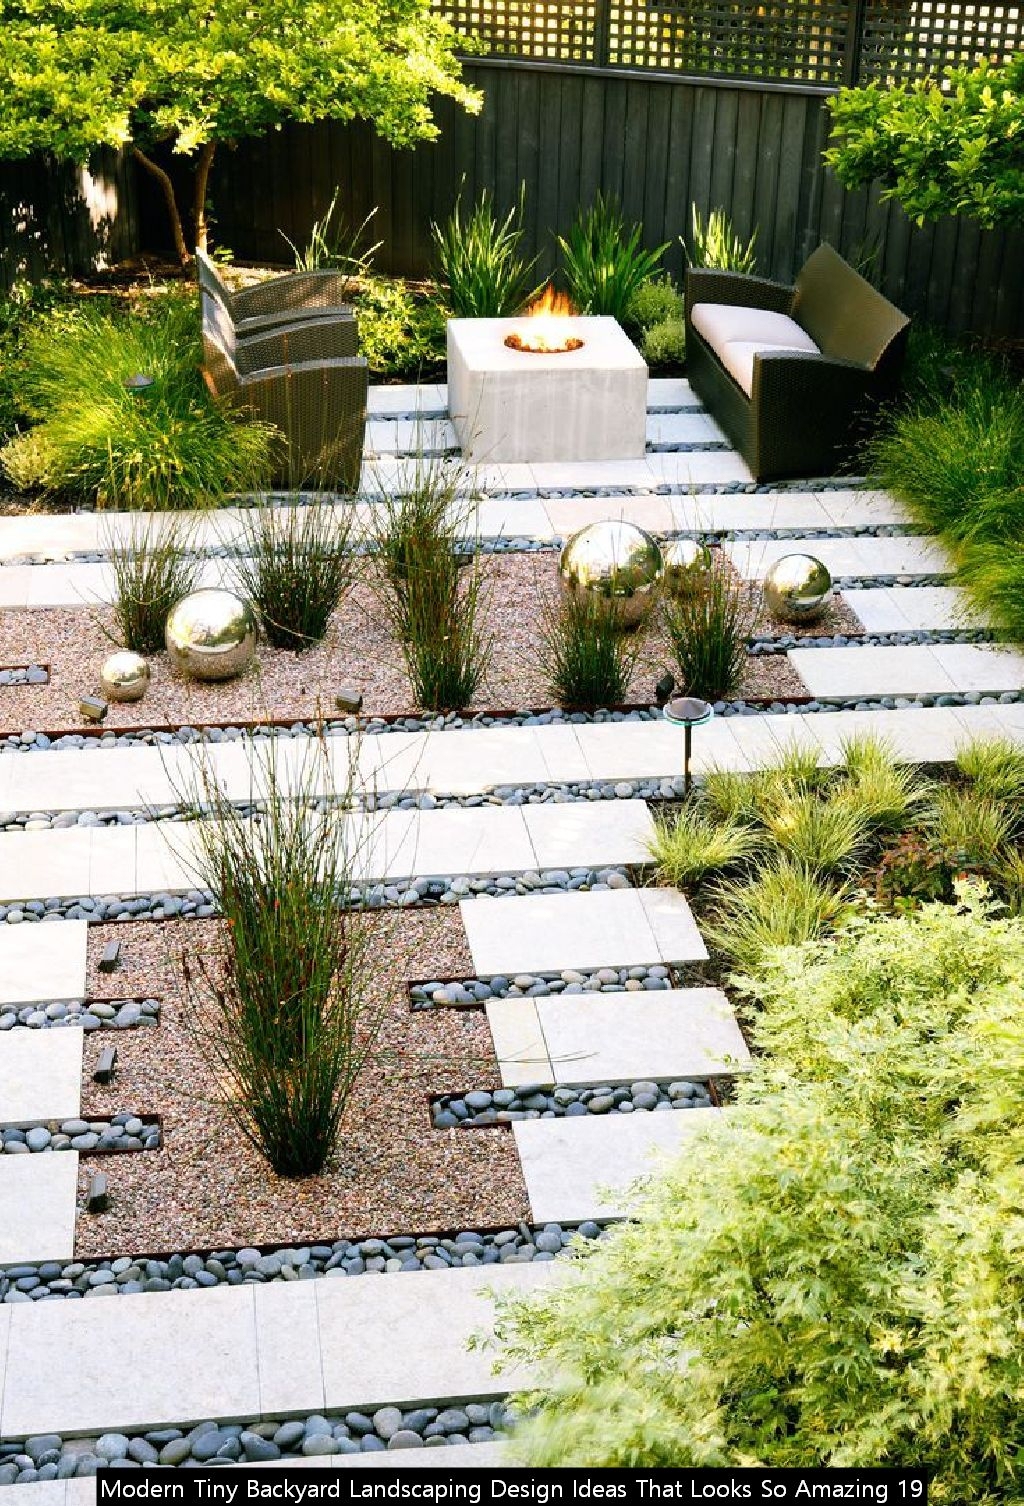 Modern Tiny Backyard Landscaping Design Ideas That Looks So Amazing 19